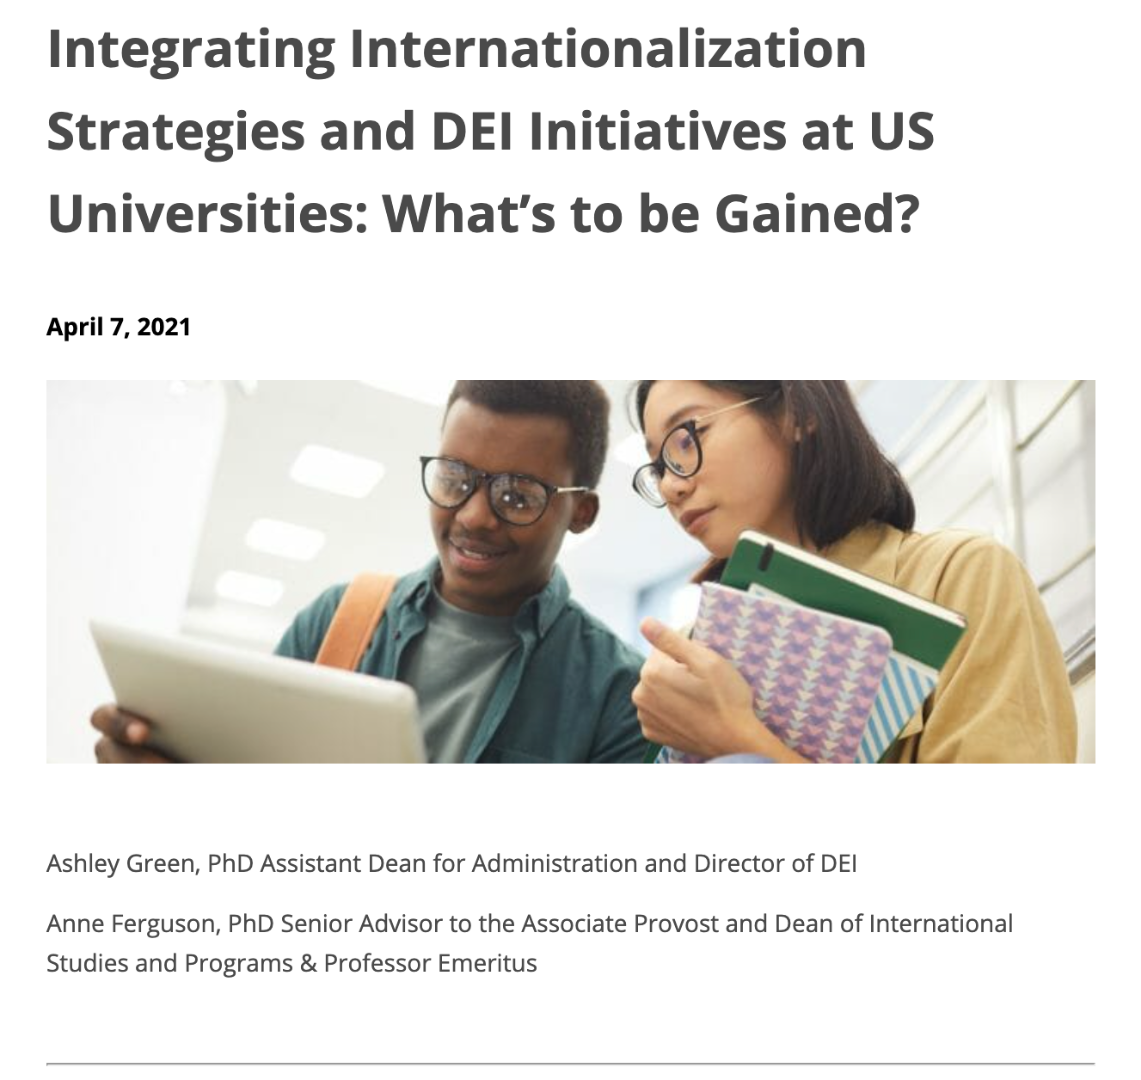 Photo: Two people look at a tablet together. Text: Integrating Internationalization Strategies and DEI Initiatives at US Universities: What's to be Gained? April 7, 2021